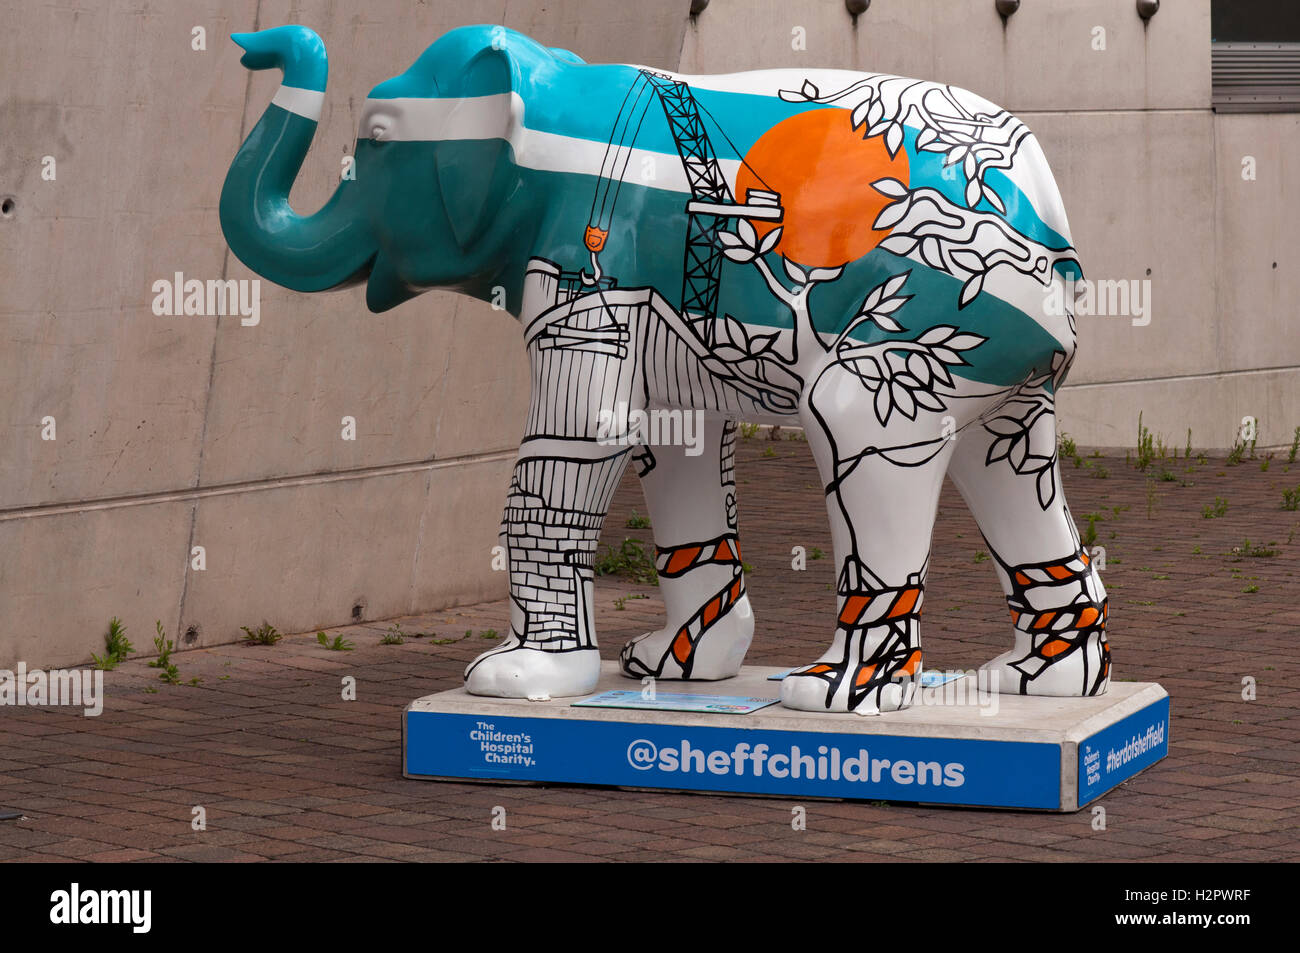 The City Elephant, by the Sculpture Jo Peel. The Elephant aims to reflect Sheffield as an ever evolving city. - Stock Image